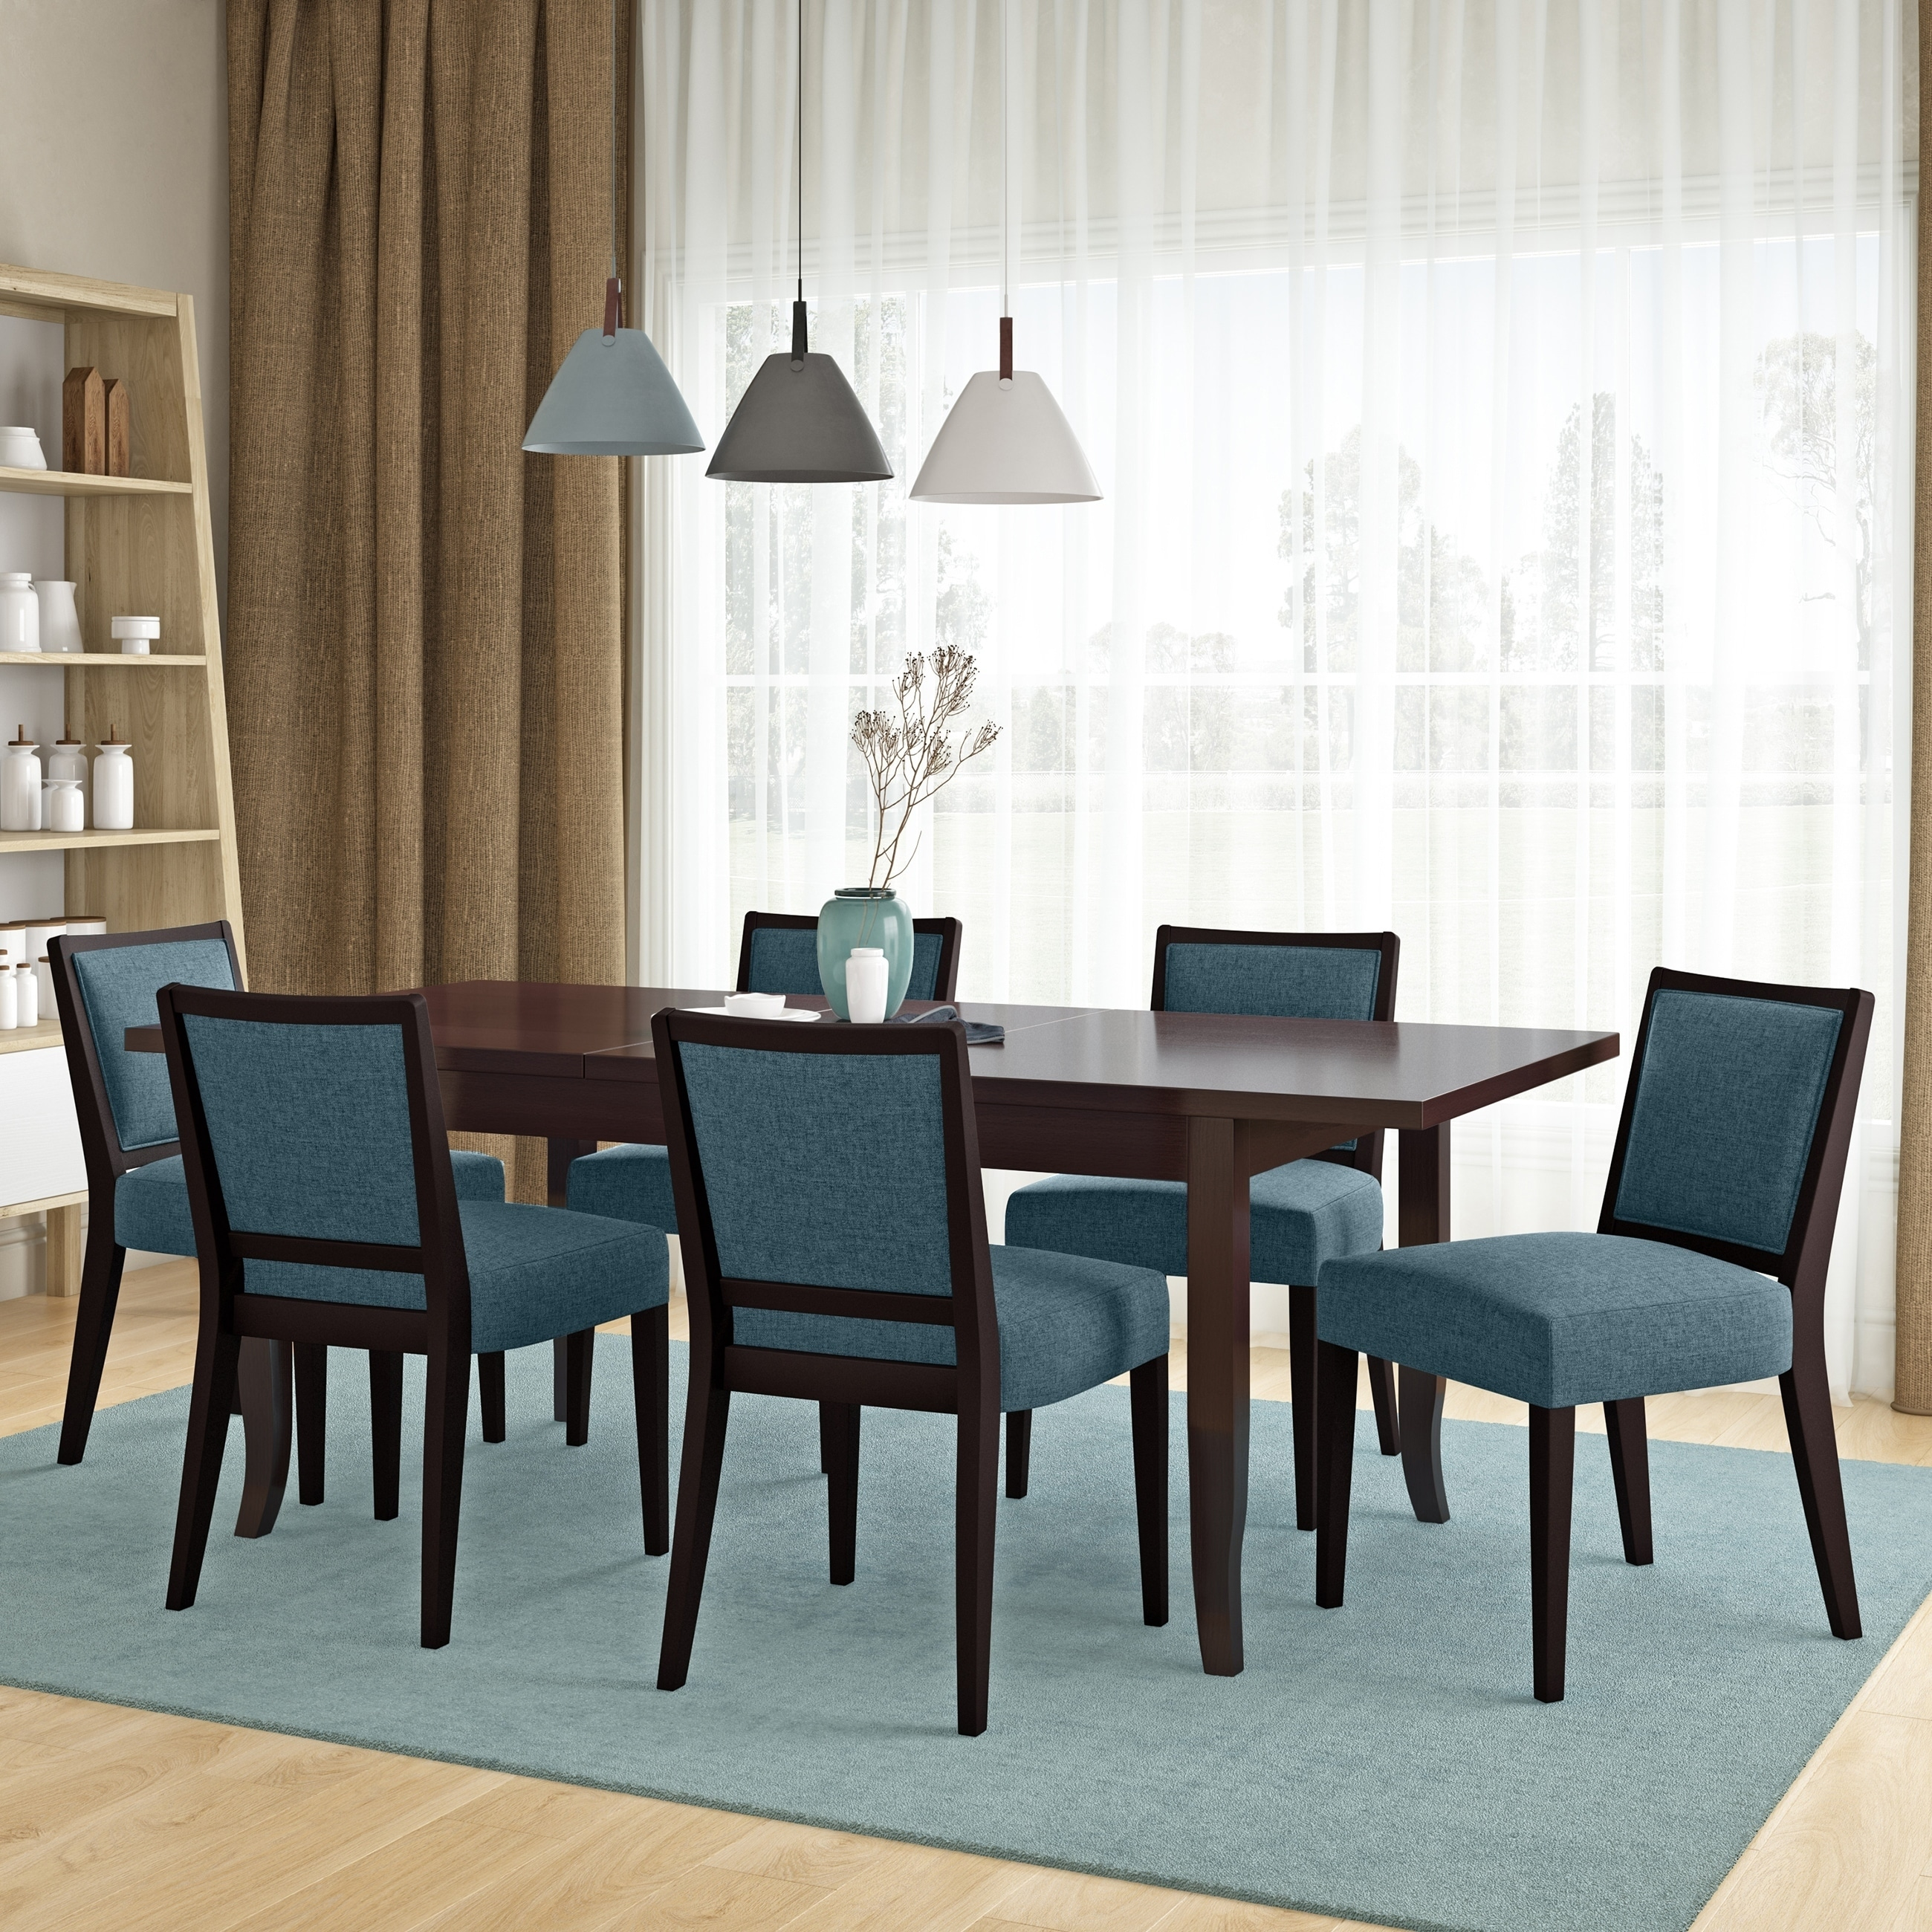 Copper Grove Olin 7 Piece Butterfly Leaf Espresso Finish Dining Table And Upholstered Armless Chairs Overstock 30064852